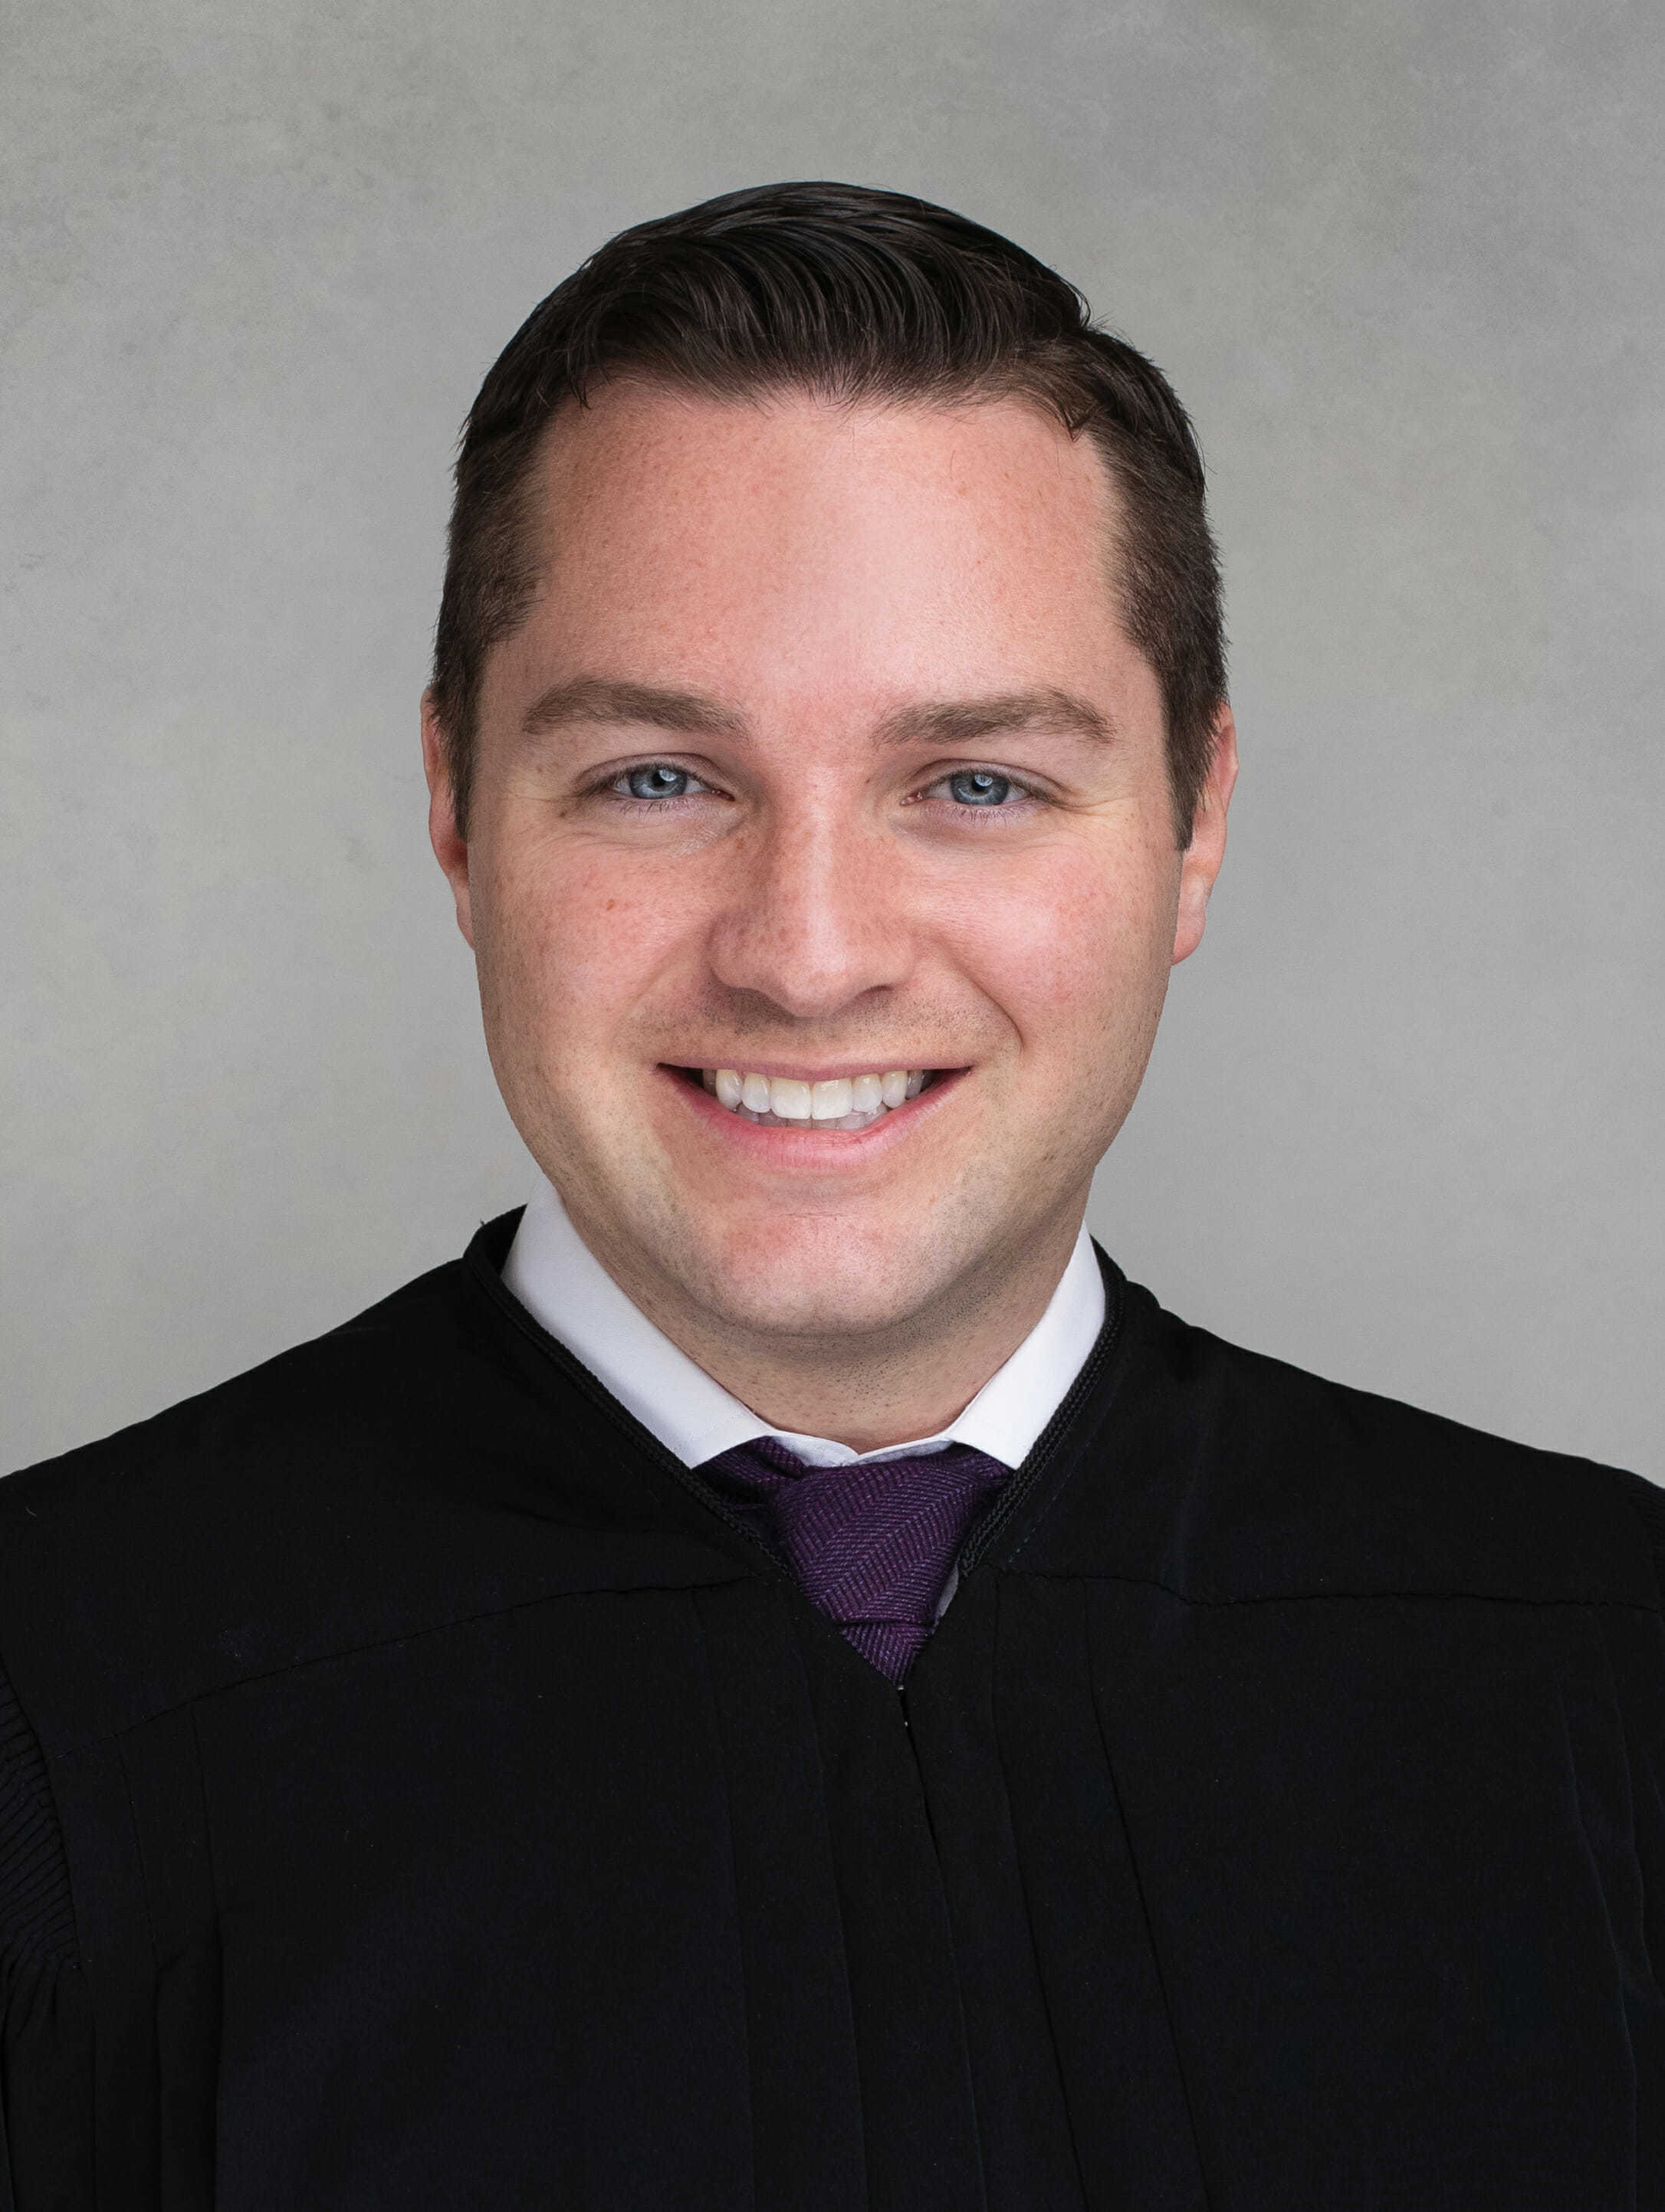 Judge Cunningham